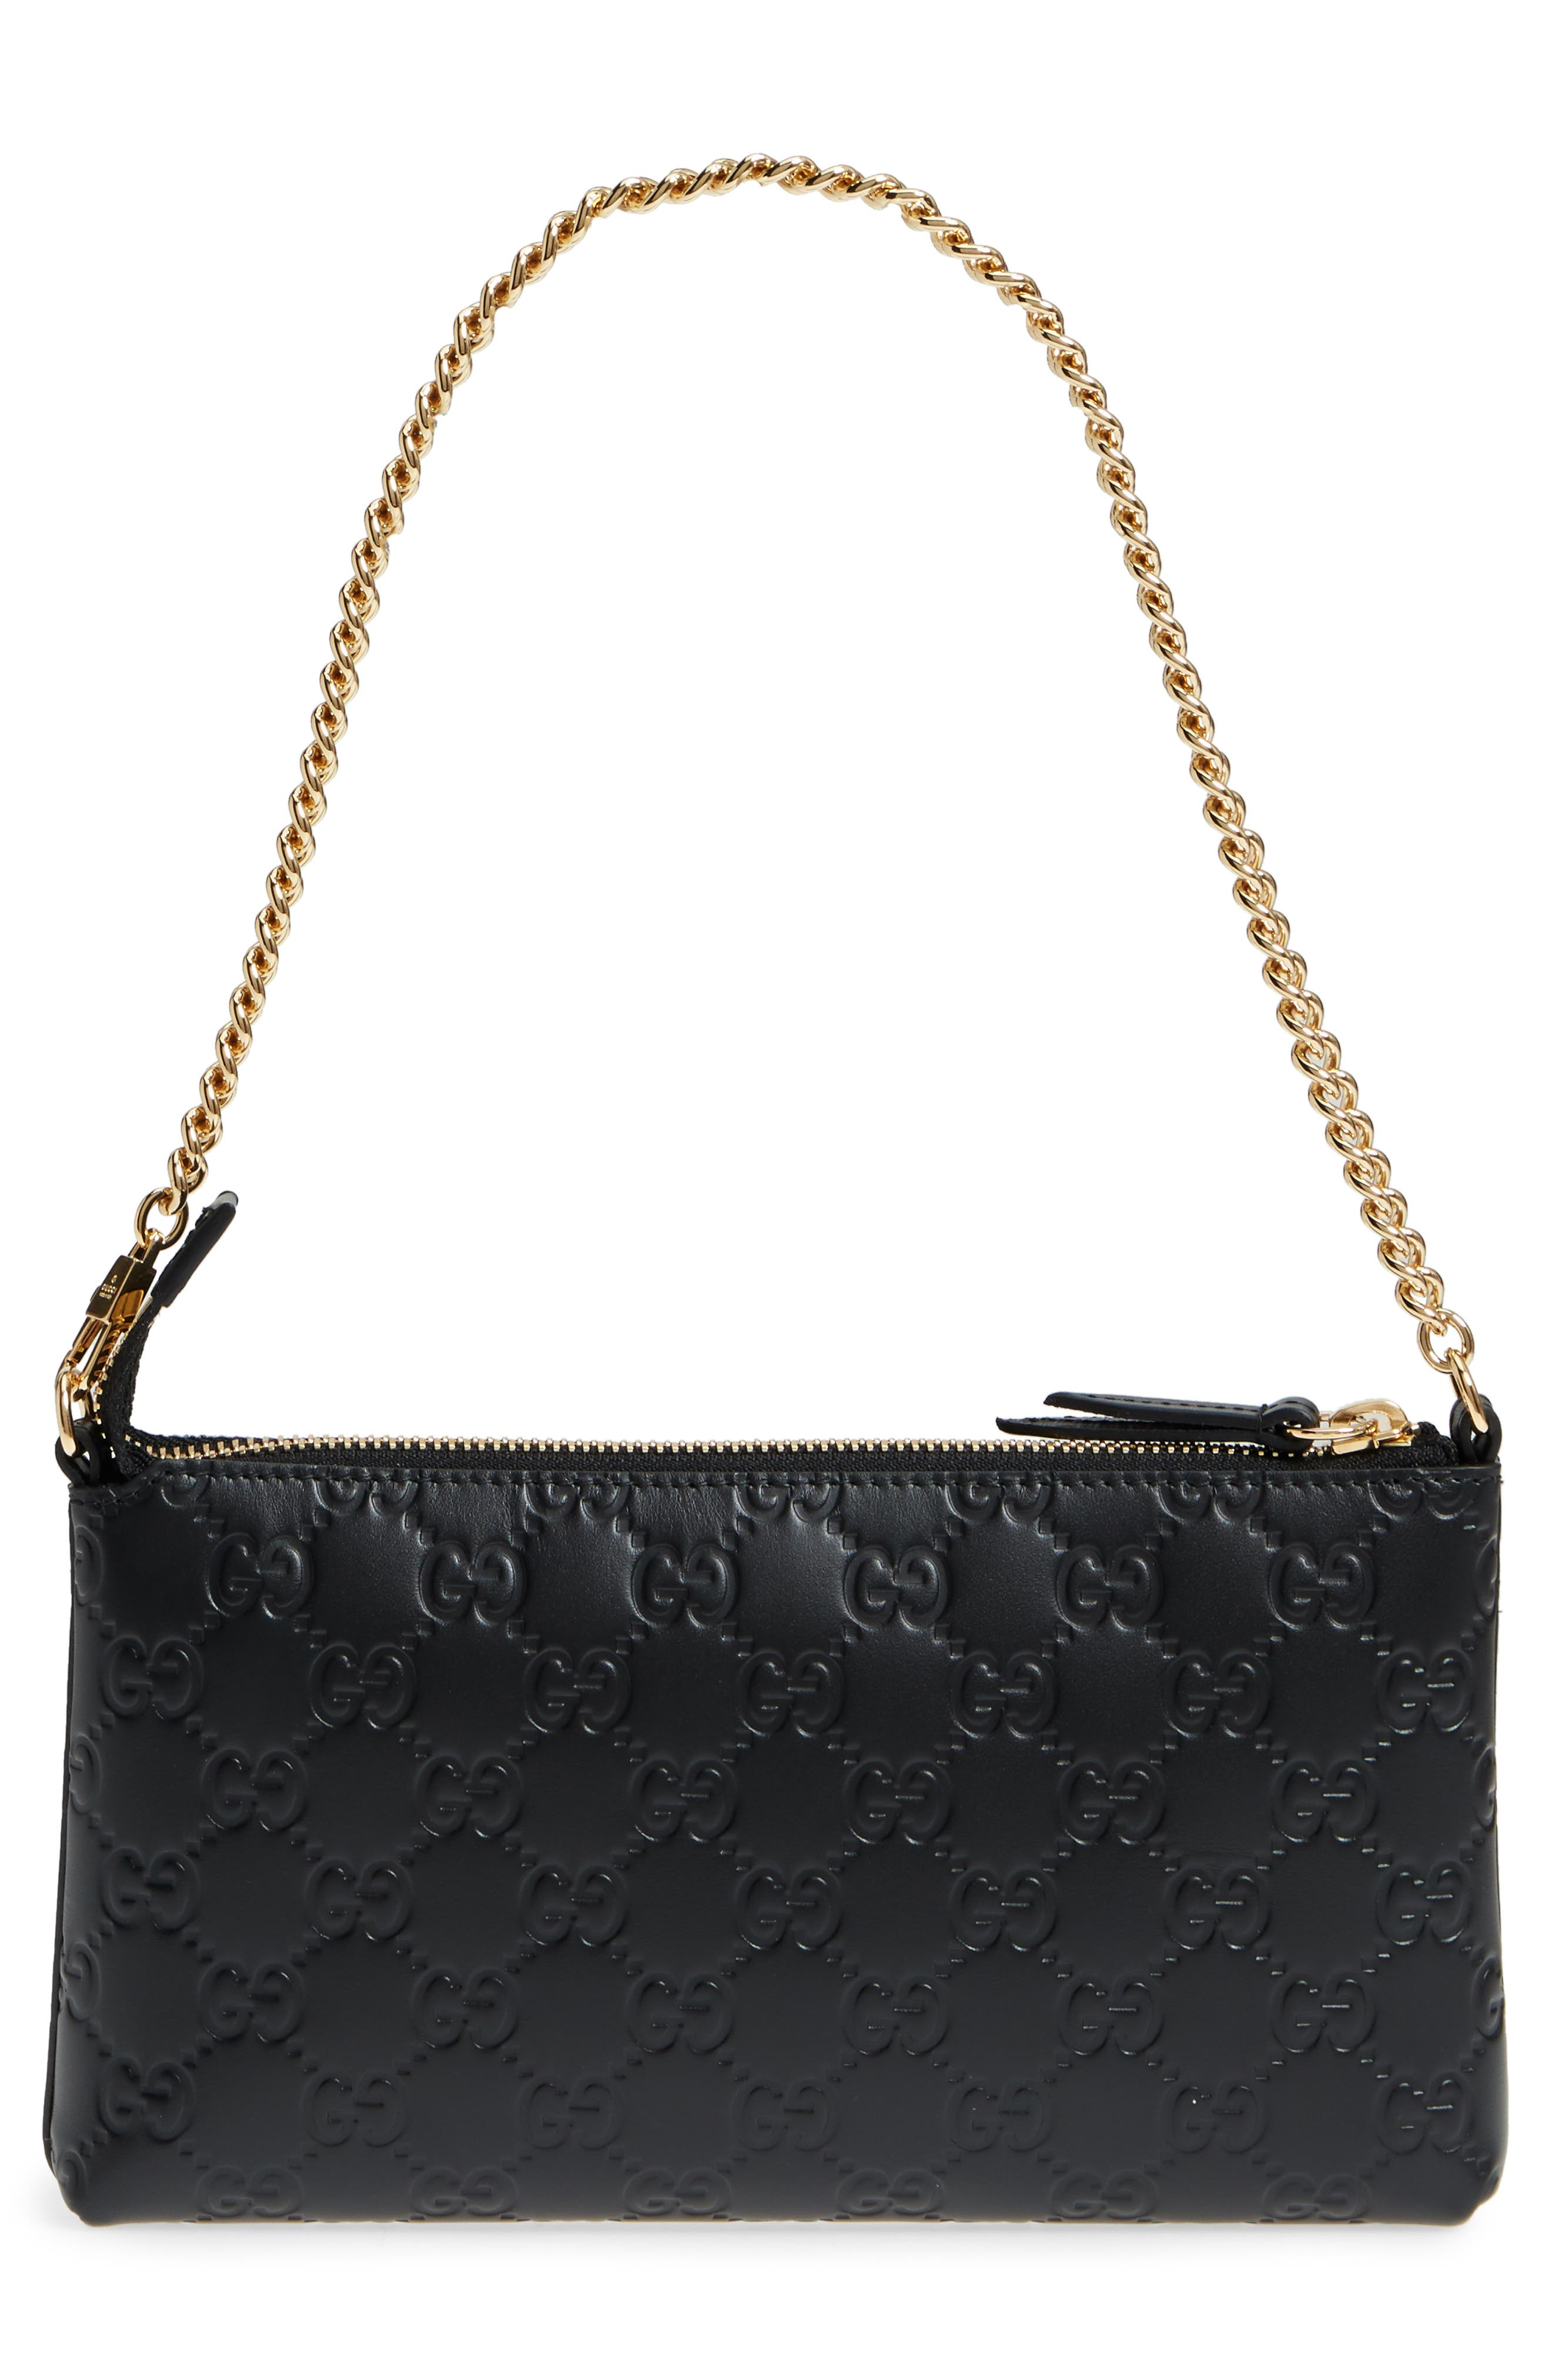 GG Leather Wallet on a Chain,                             Alternate thumbnail 3, color,                             Nero/ Nero